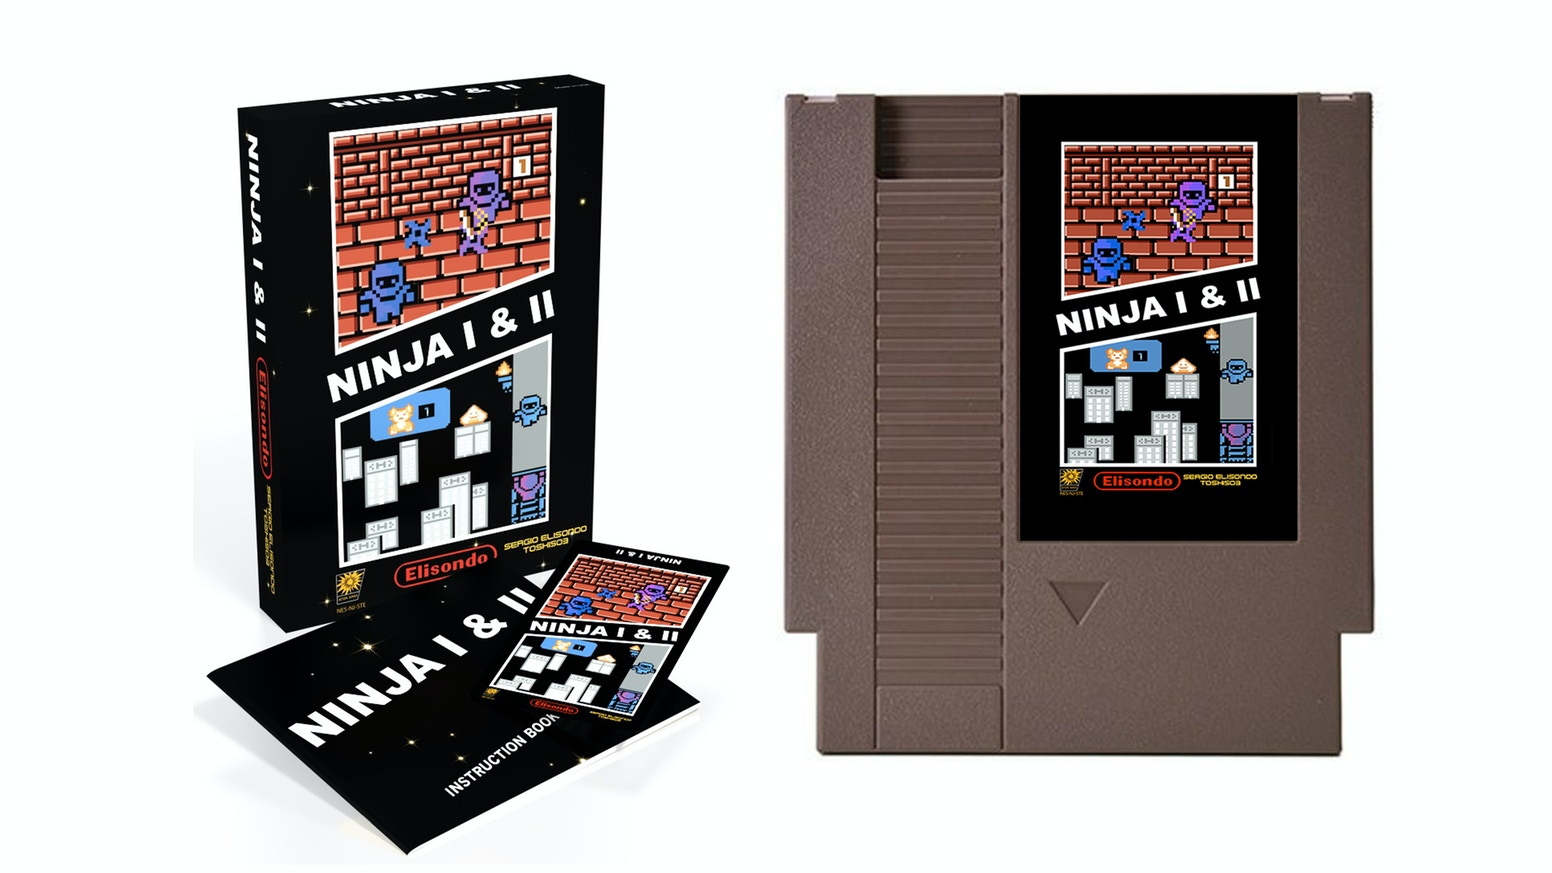 """Ninja"" and ""Ninja II"" on one cart! They're both finished/complete titles that are being combined into one game for the NES and PC/Mac"